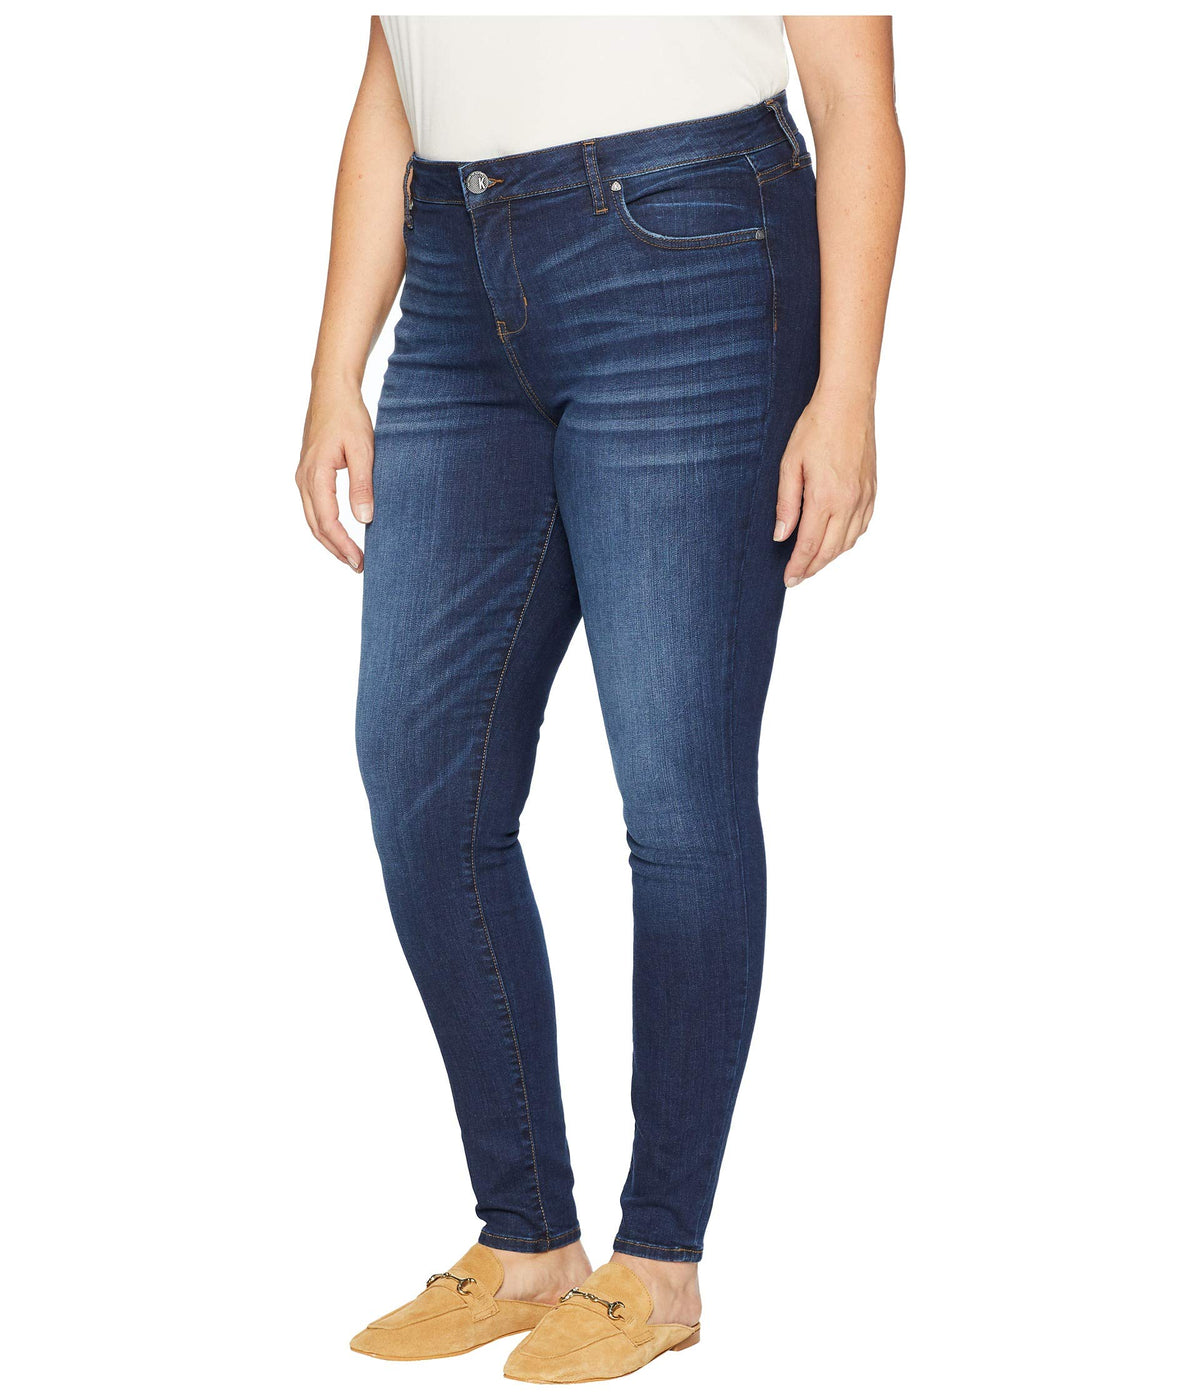 Plus Size Mia High-Waist Skinny Jeans in Goodly